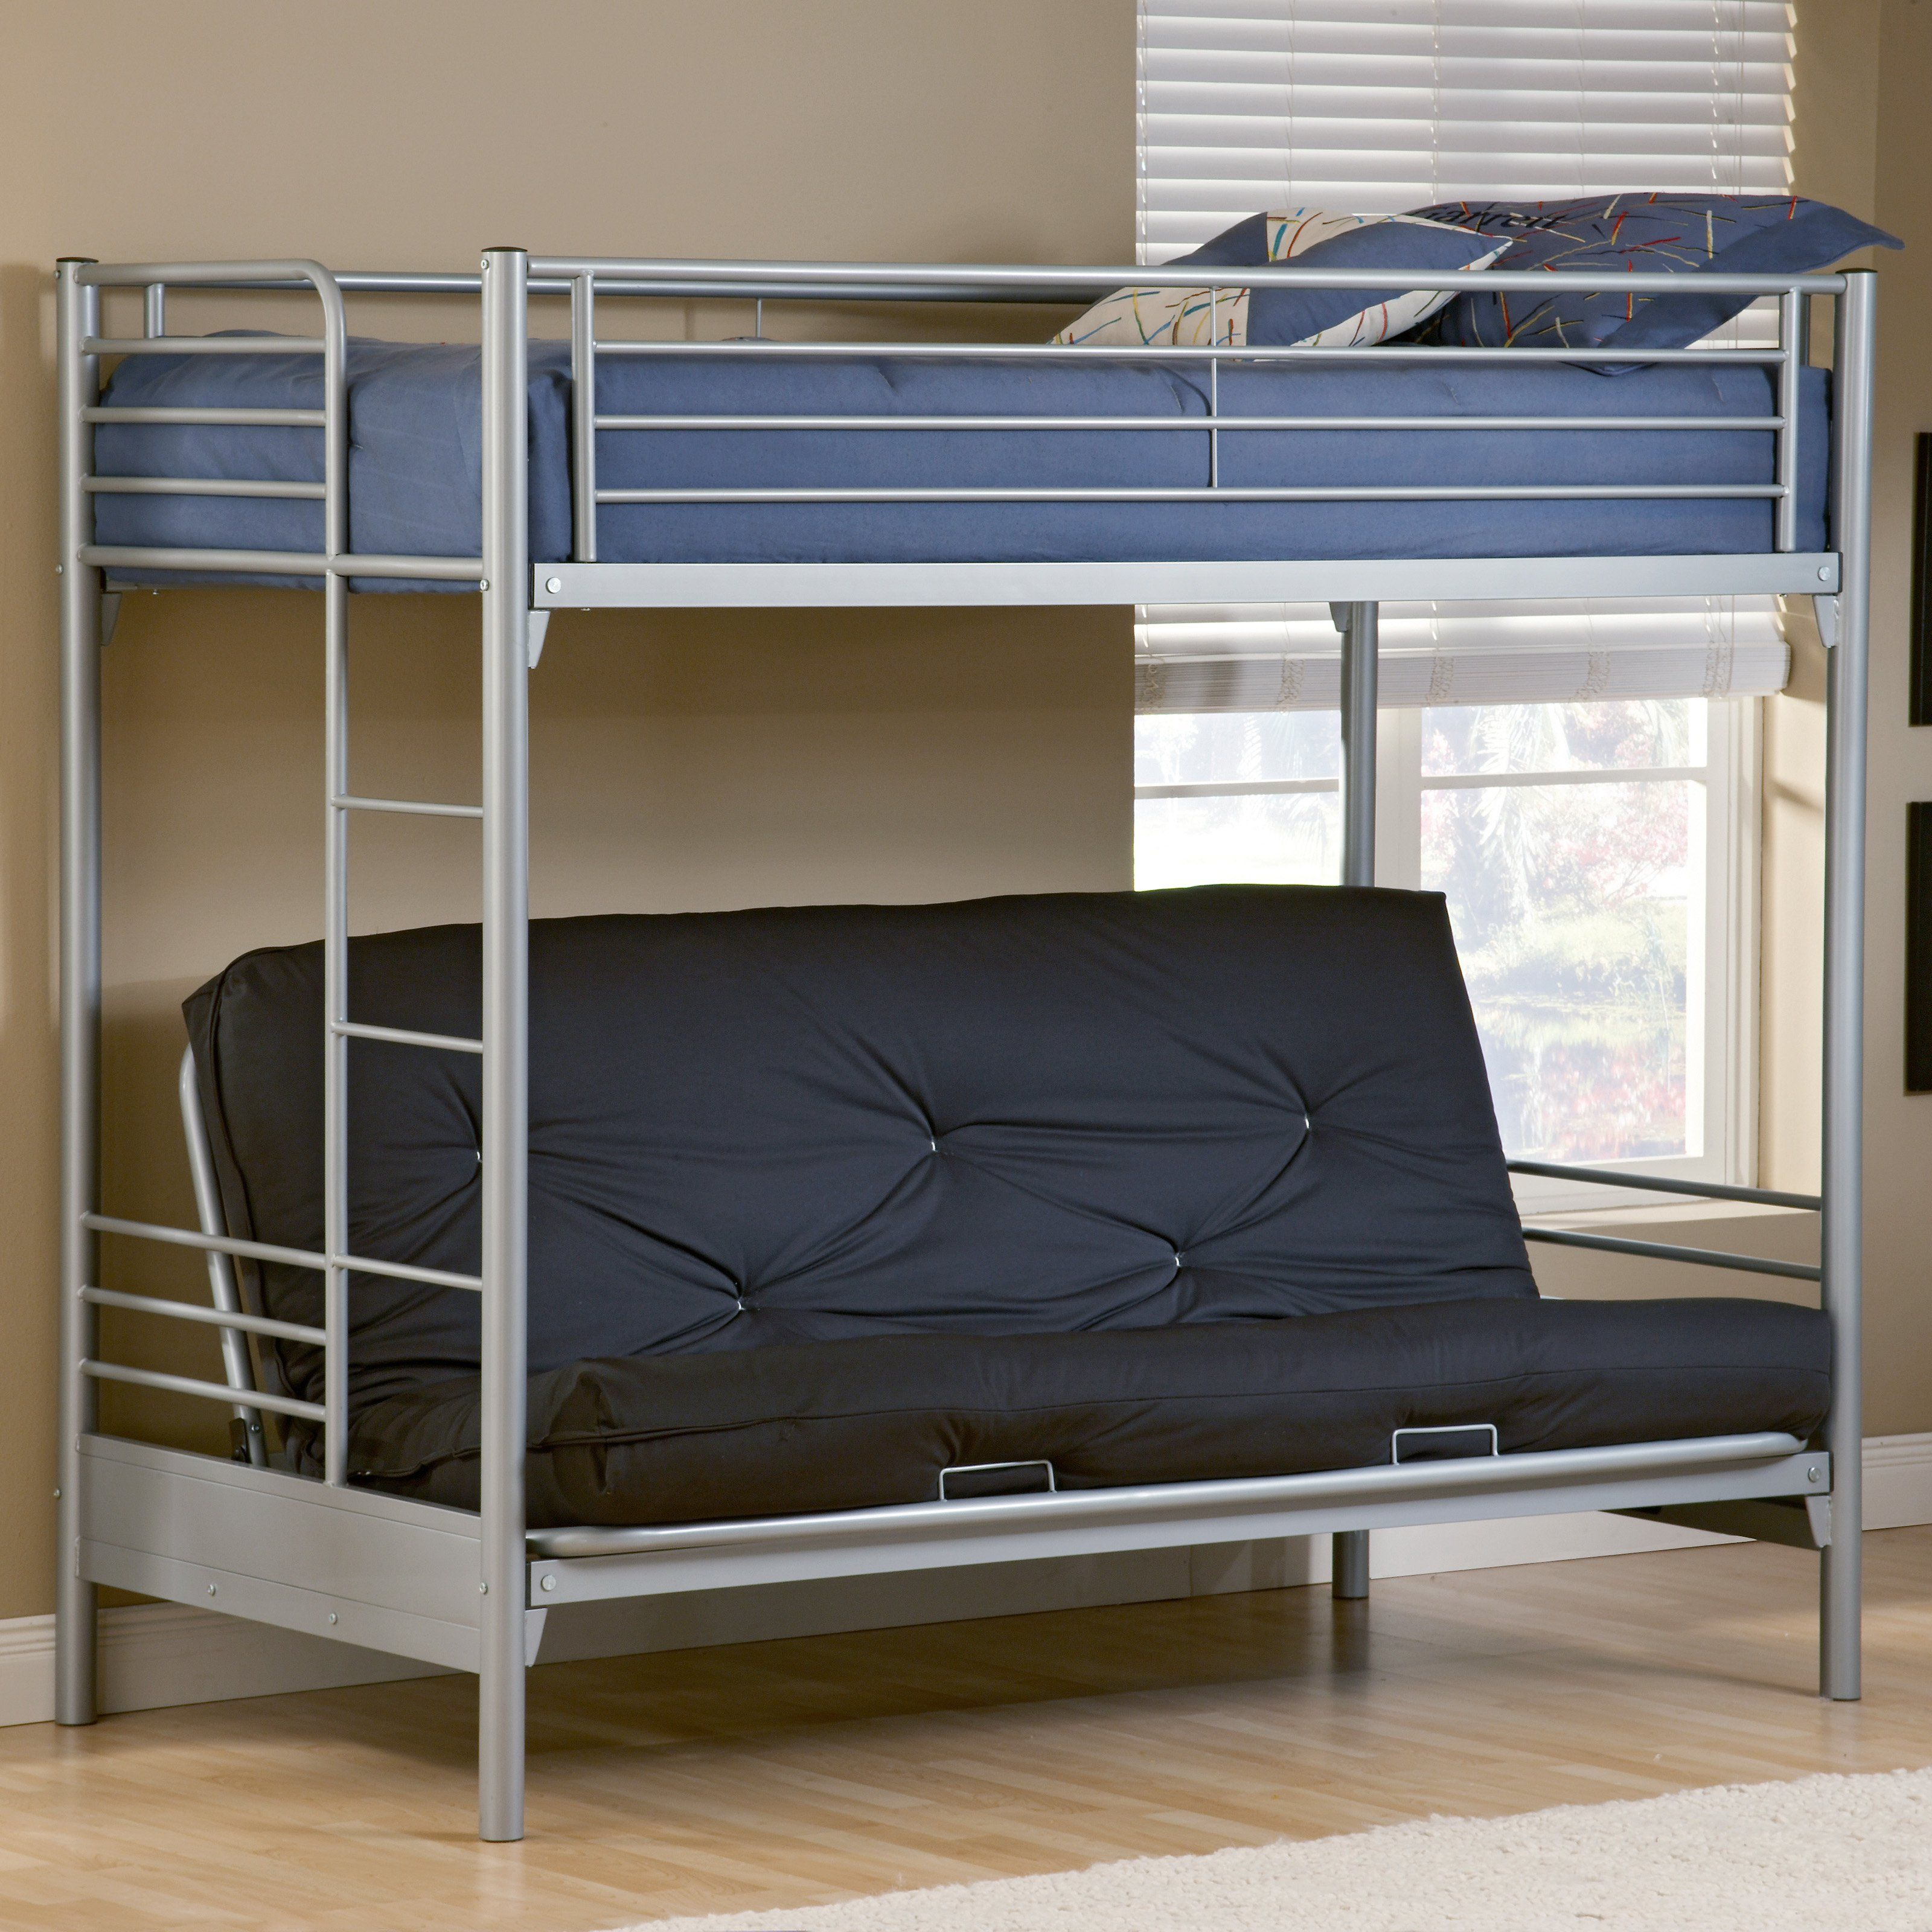 Universal Twin Over Futon Bunk Bed Hl2602 Cheap Bunk Beds Futon Bunk Bed Metal Bunk Beds